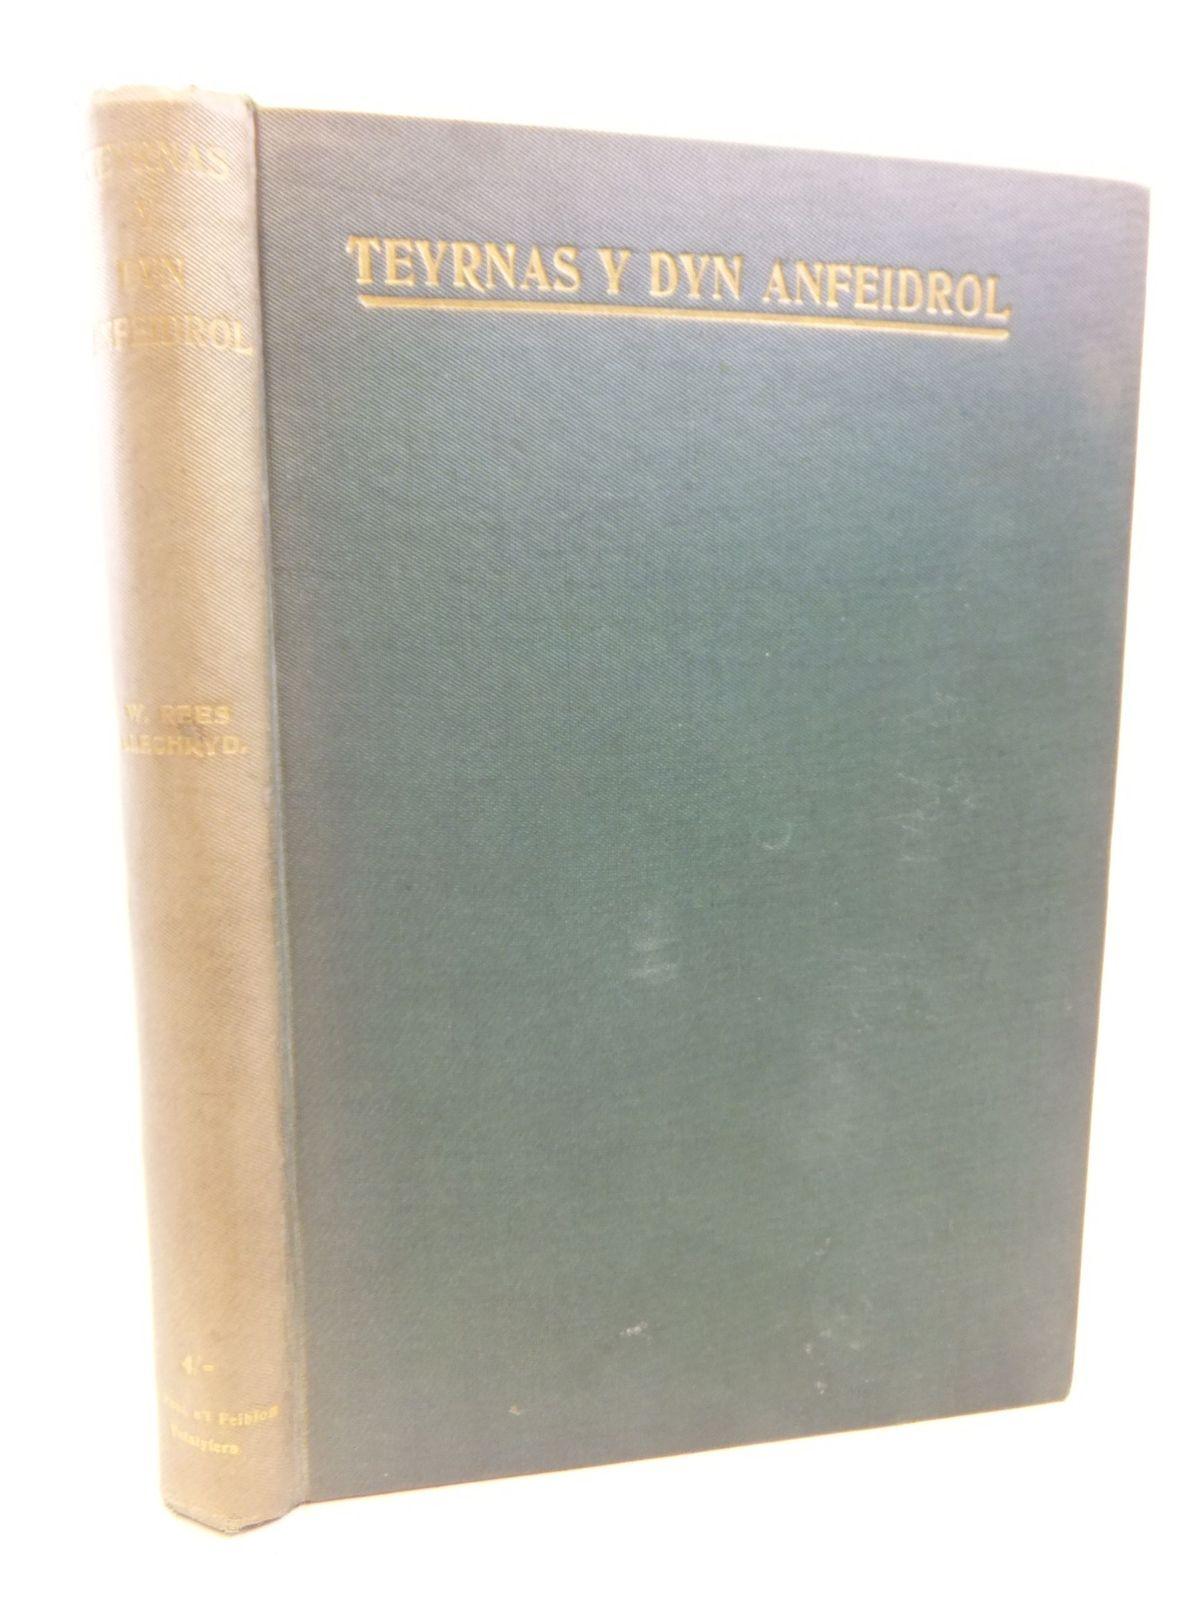 Photo of TEYRNAS Y DYN ANFEIDROL: AGORIAD I EGLWYS PHILADELPHIA written by Rees, W. published by Ystalyfera (STOCK CODE: 1713027)  for sale by Stella & Rose's Books